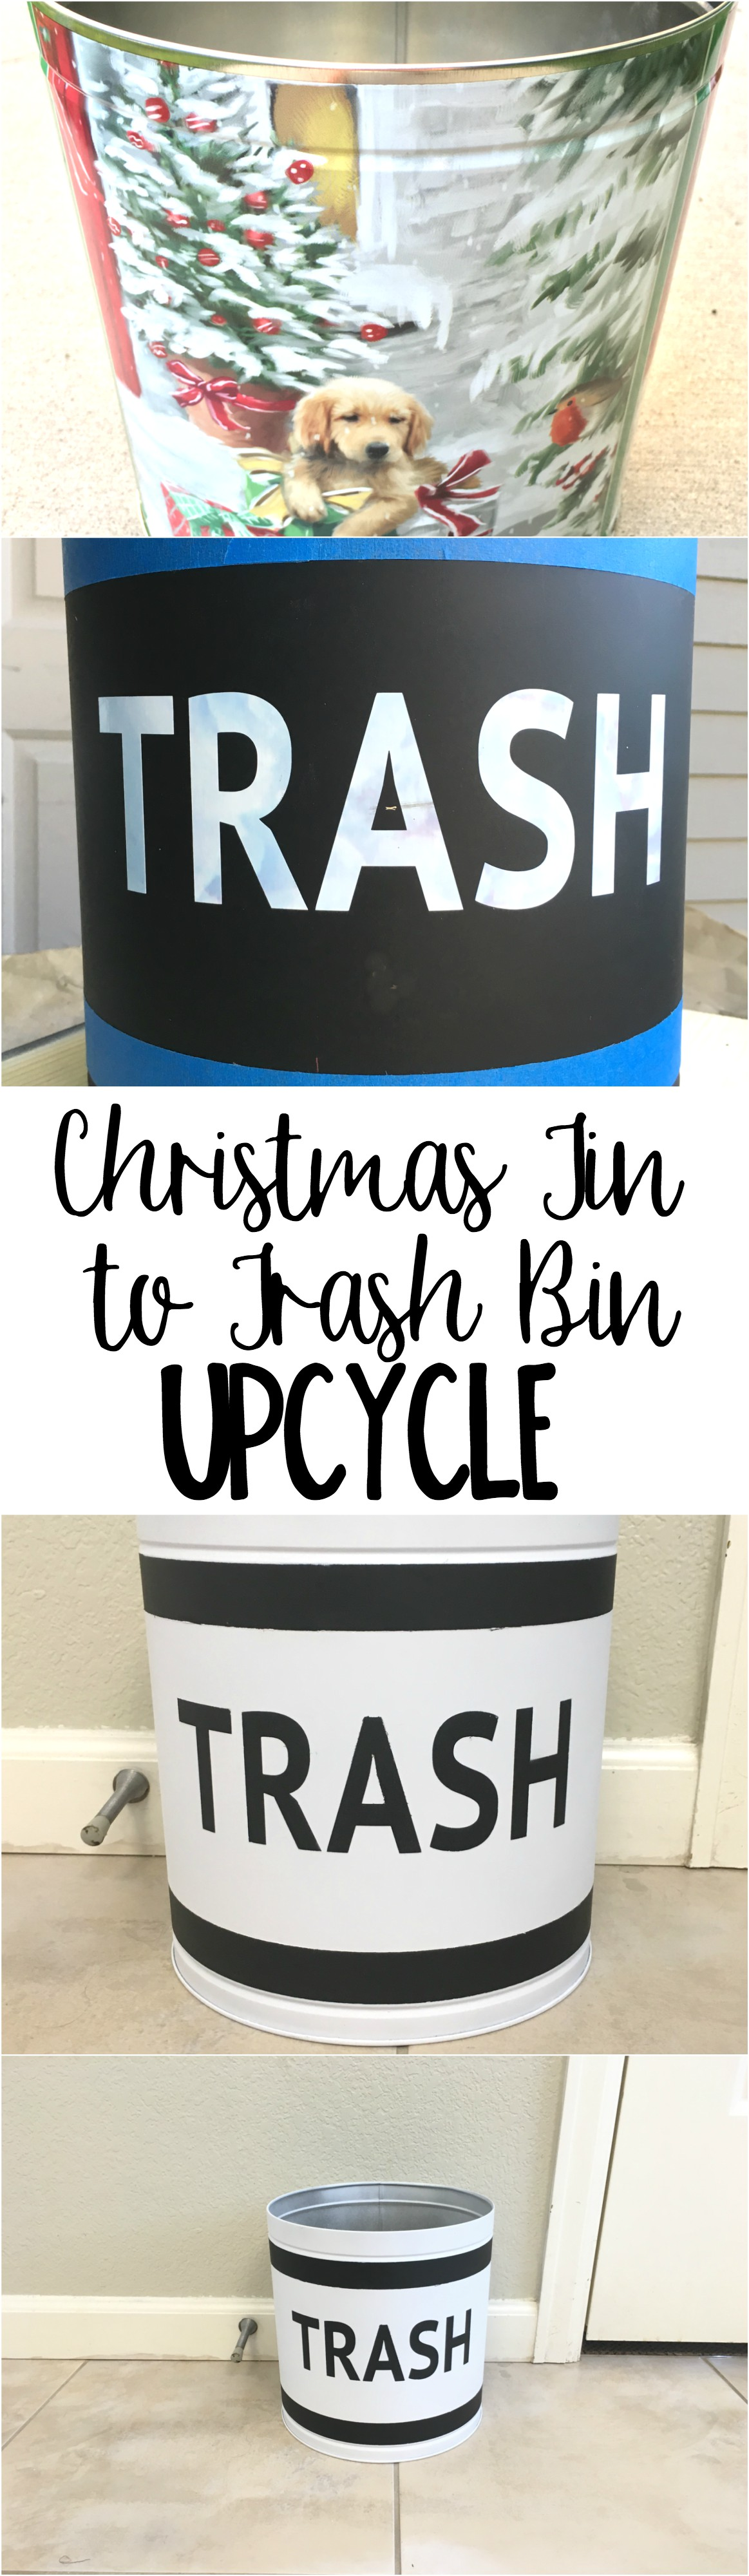 Here is the perfect solution for your leftover popcorn tins! Turn it into your own customizable trash bin. Great upcycle!